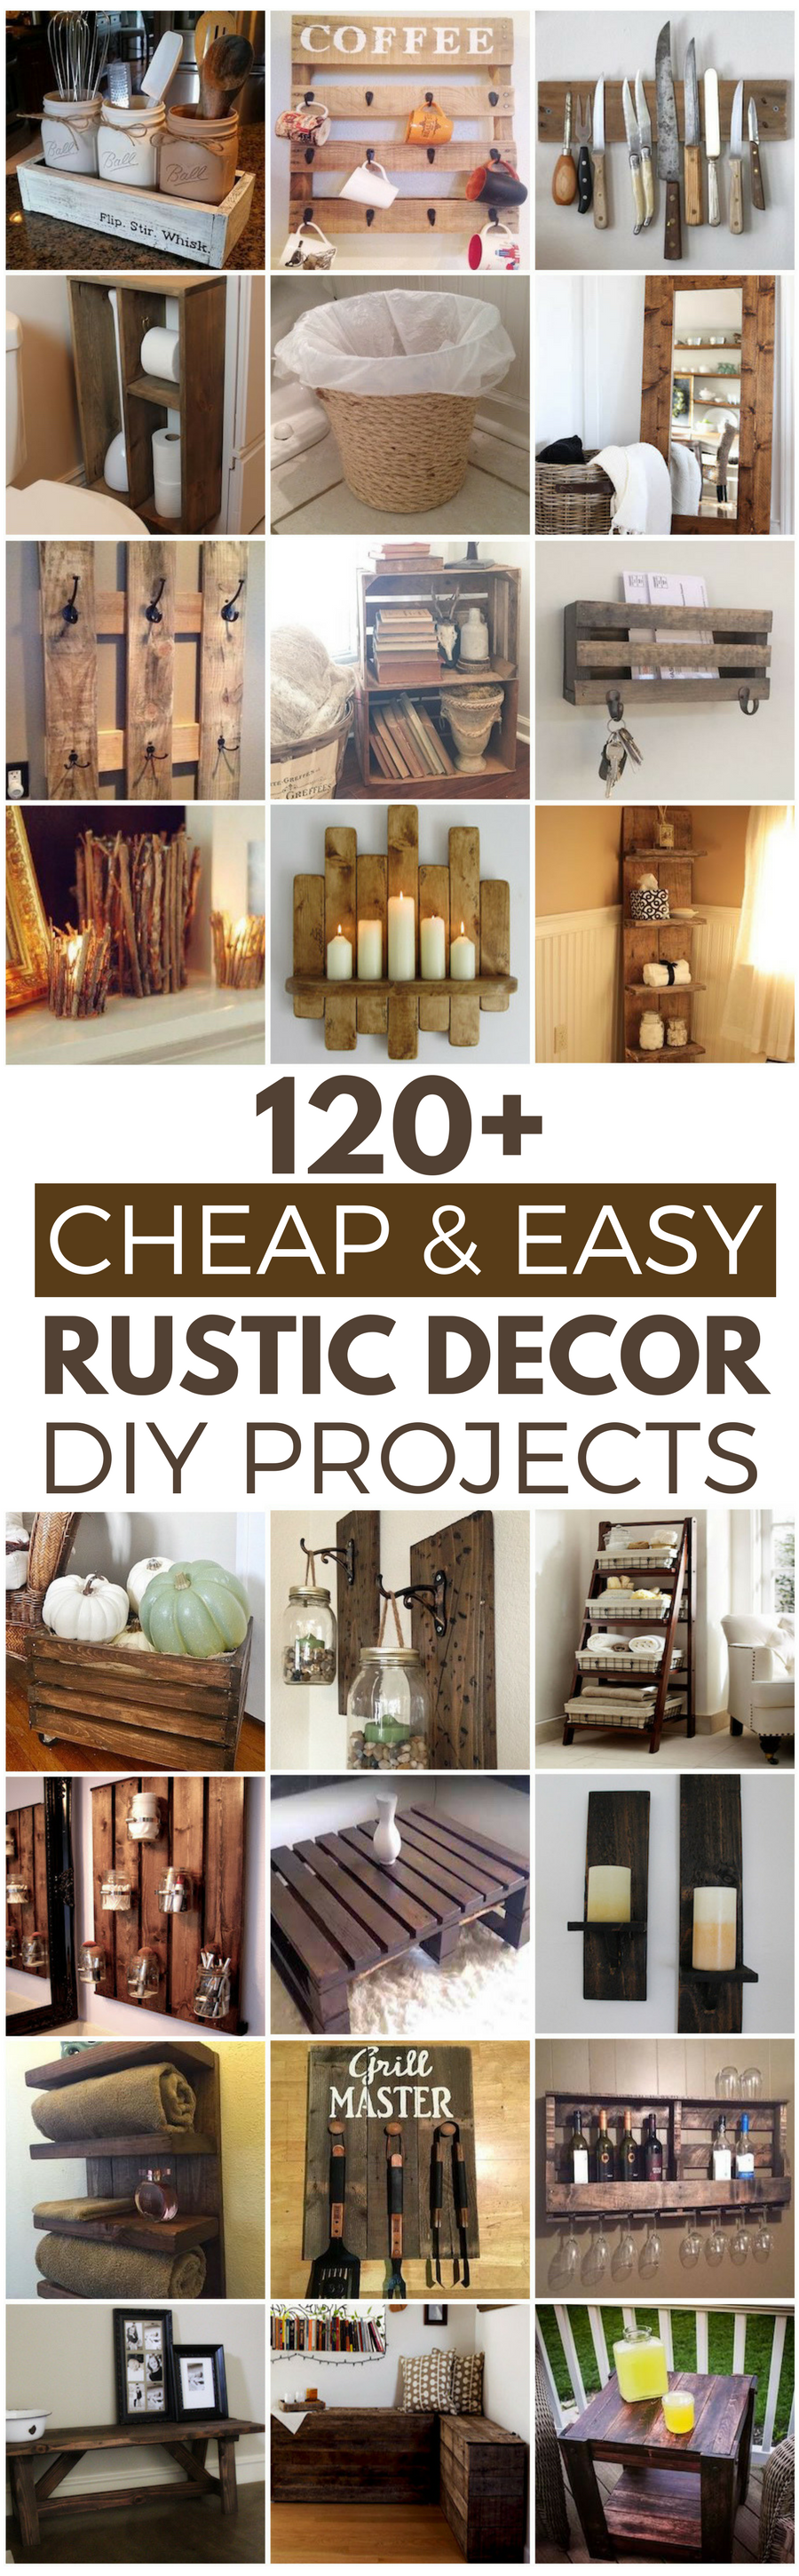 120 Cheap and Easy DIY Rustic Home Decor Ideas | Easy, House and Craft